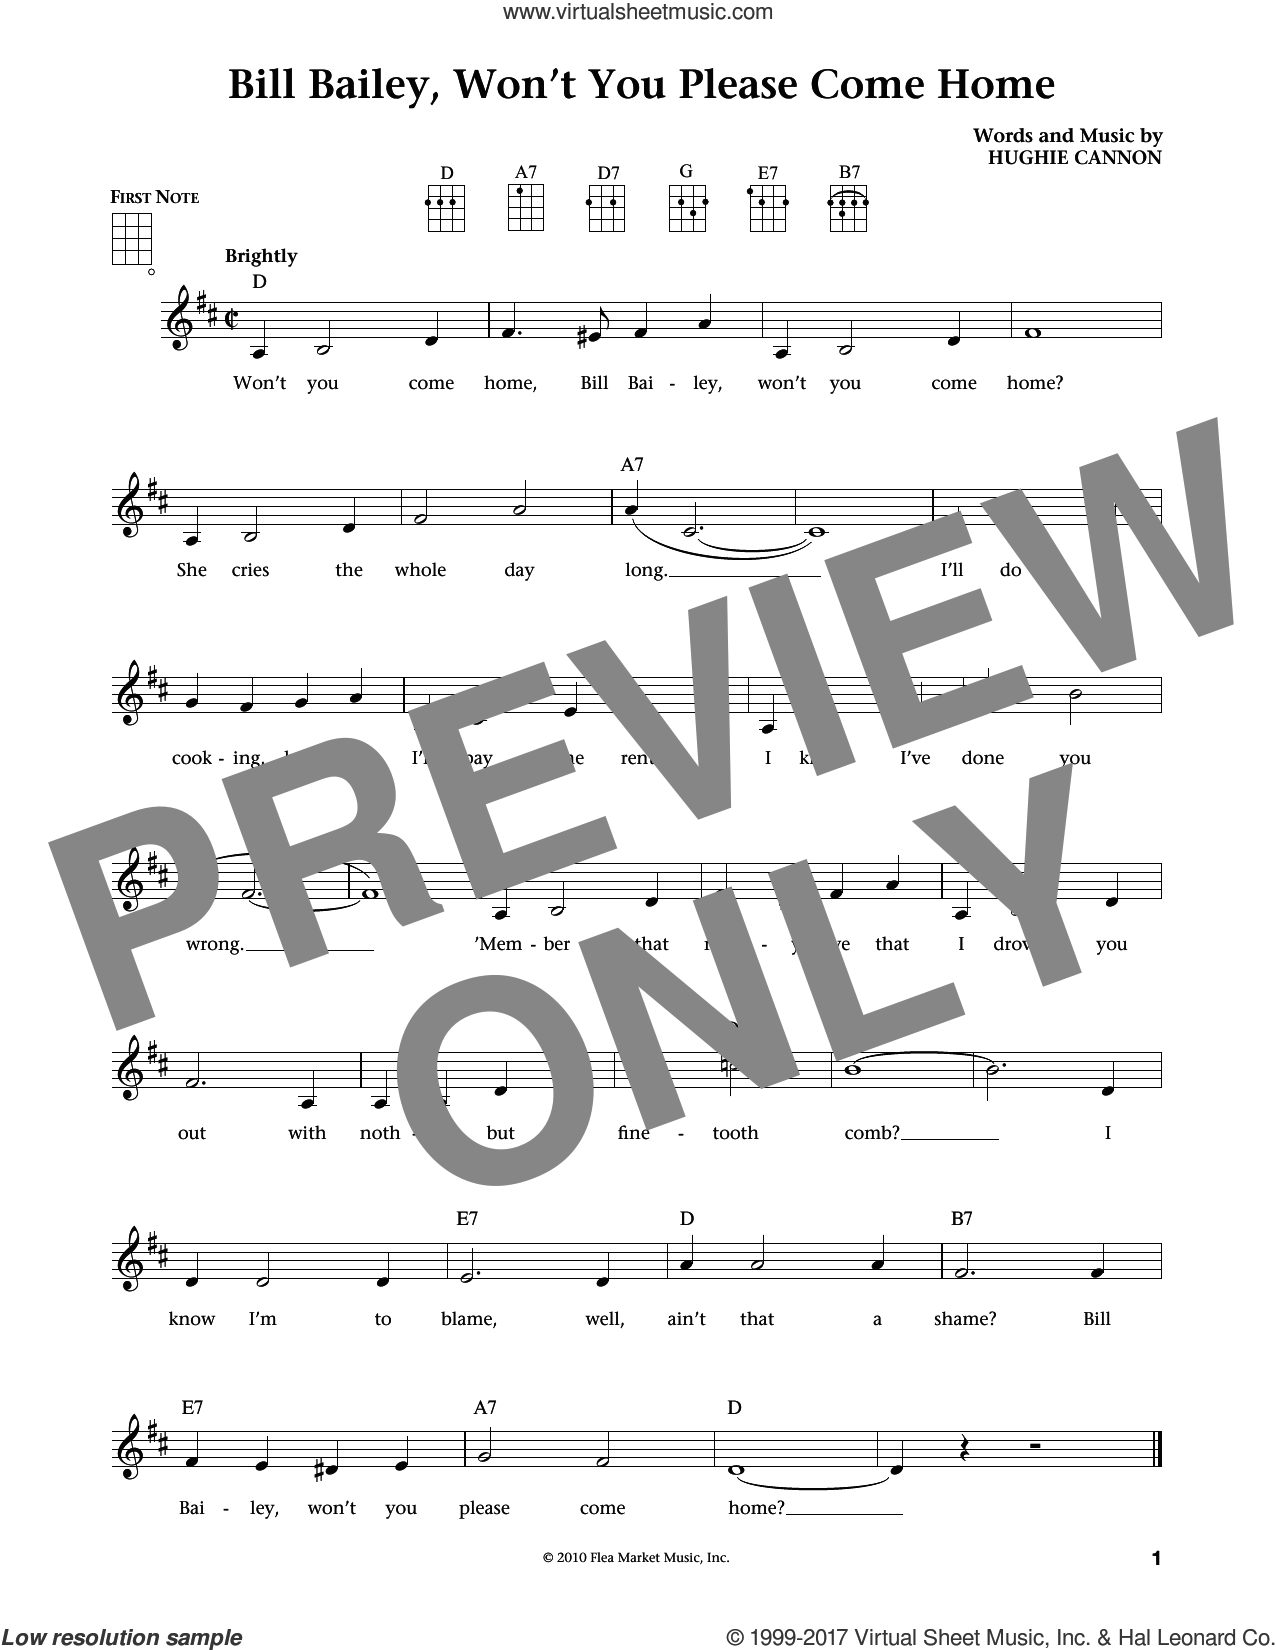 Bill Bailey, Won't You Please Come Home (from The Daily Ukulele) (arr. Liz and Jim Beloff) sheet music for ukulele by Hughie Cannon, Jim Beloff and Liz Beloff, intermediate skill level